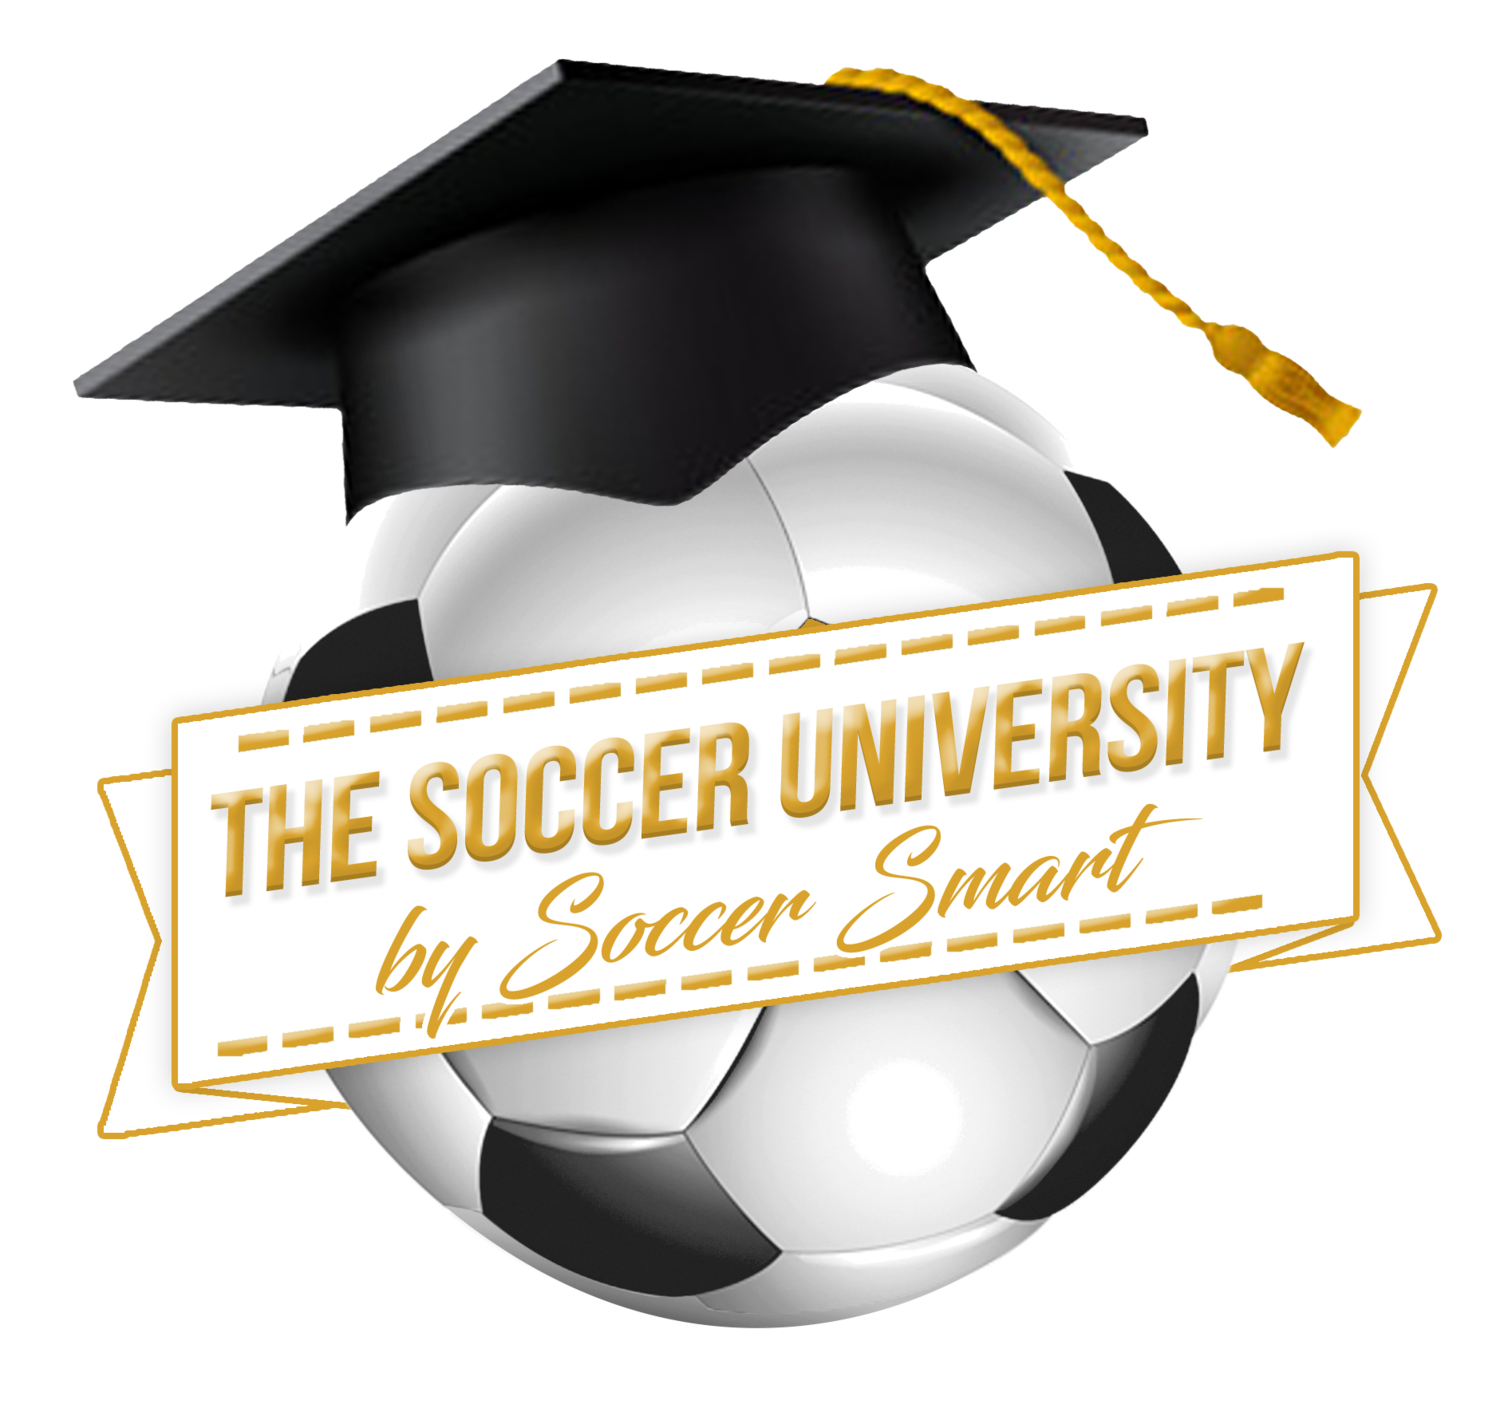 The Soccer University